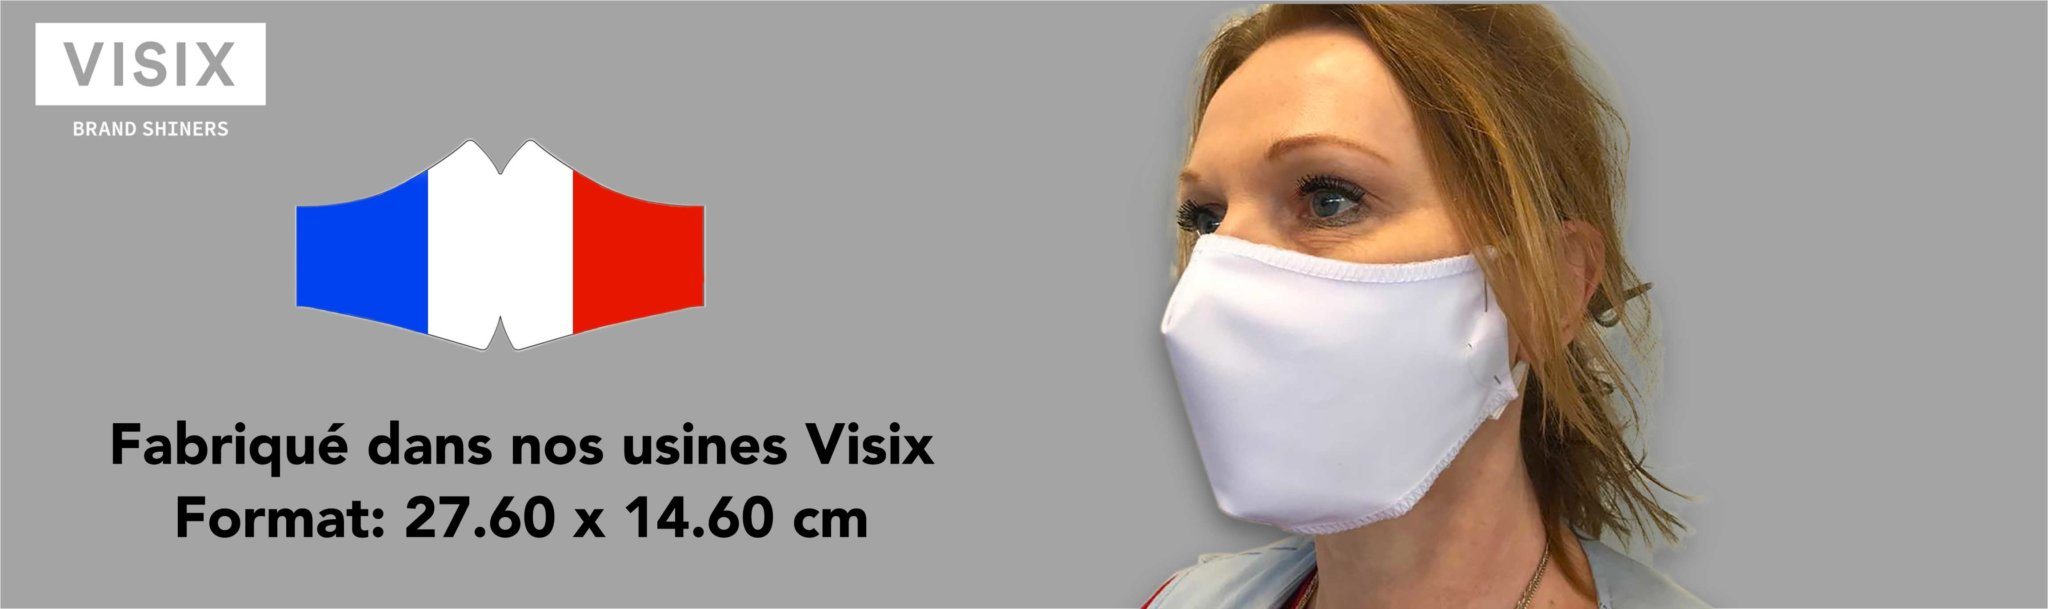 masque-de-protection-coronavirus